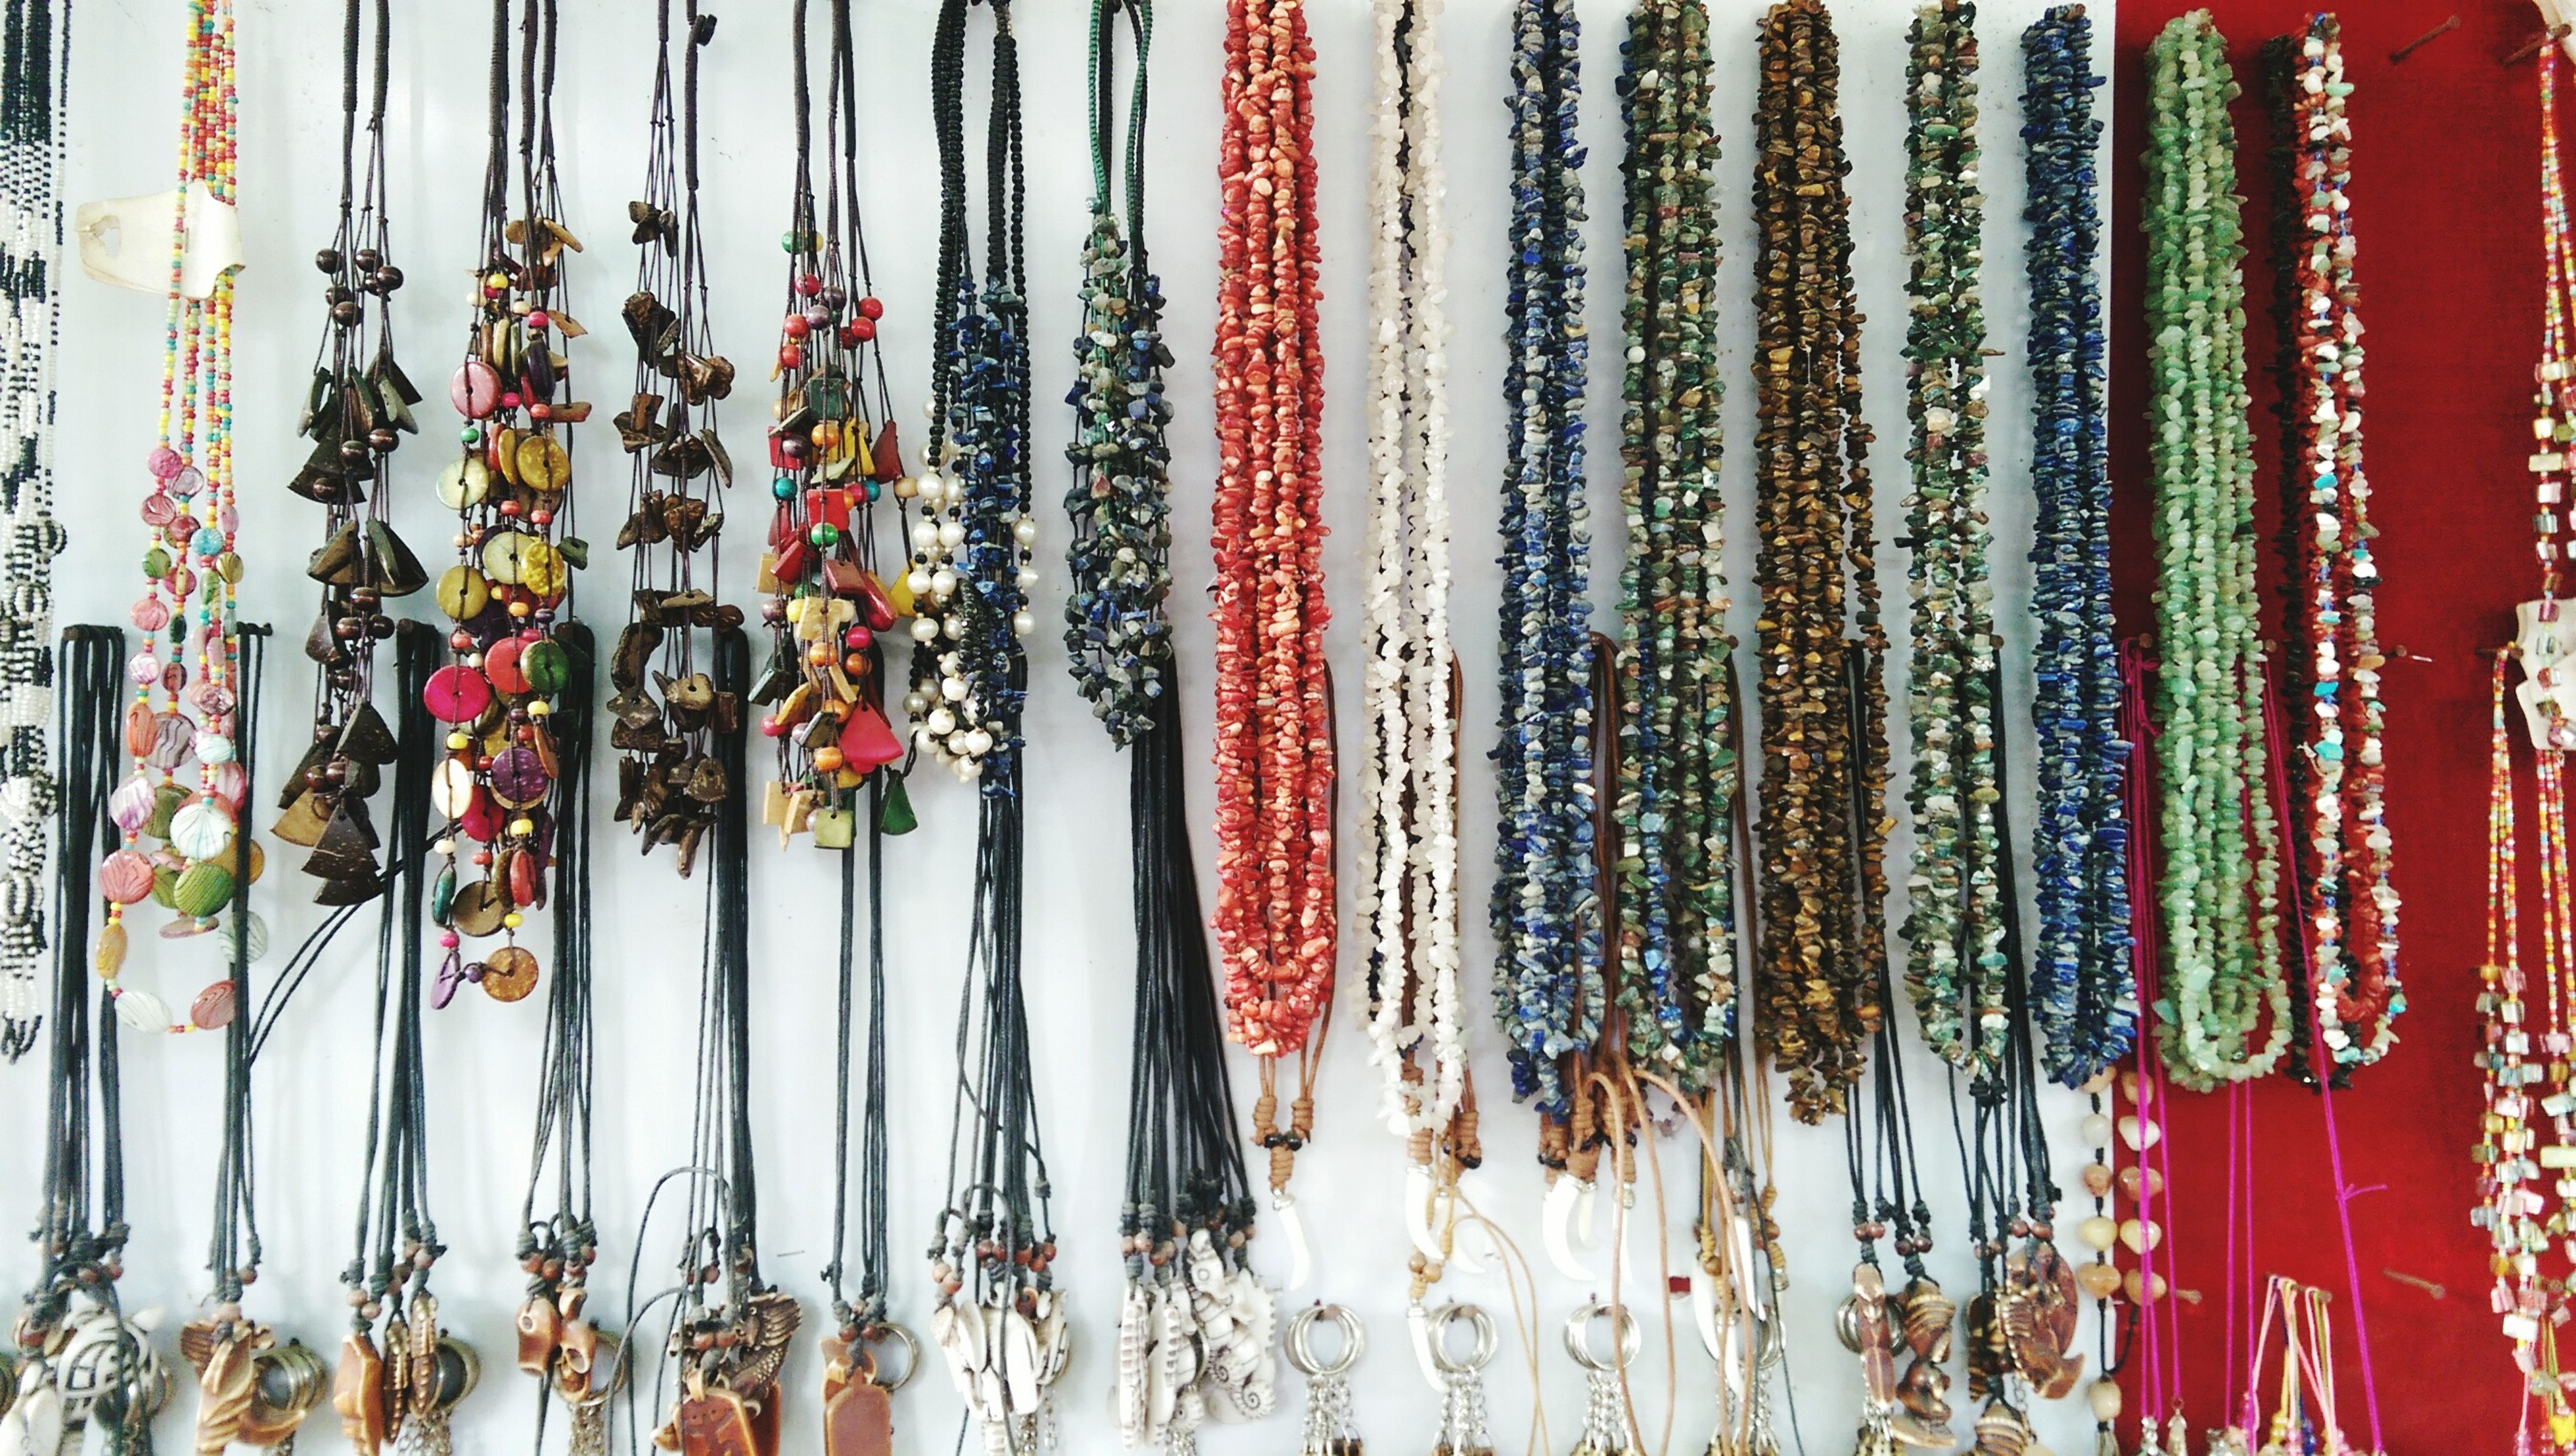 variation, hanging, large group of objects, choice, abundance, arrangement, in a row, for sale, order, multi colored, retail, side by side, collection, indoors, full frame, still life, backgrounds, display, market, textile